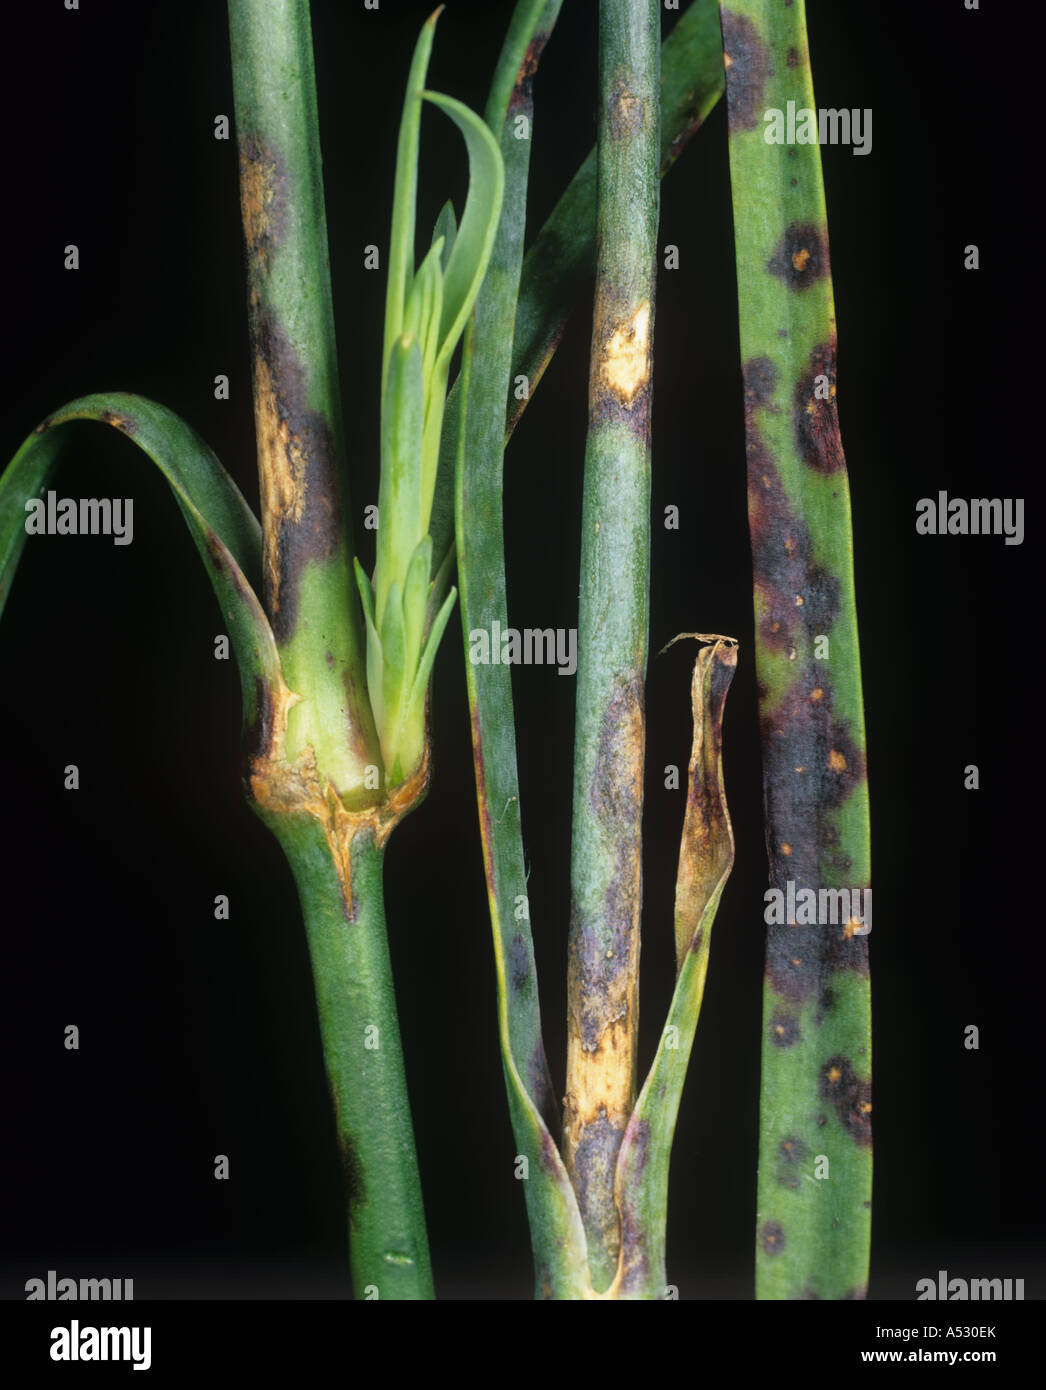 Dianthus Leaf Spot Septoria Dianthi Infection On Stem And